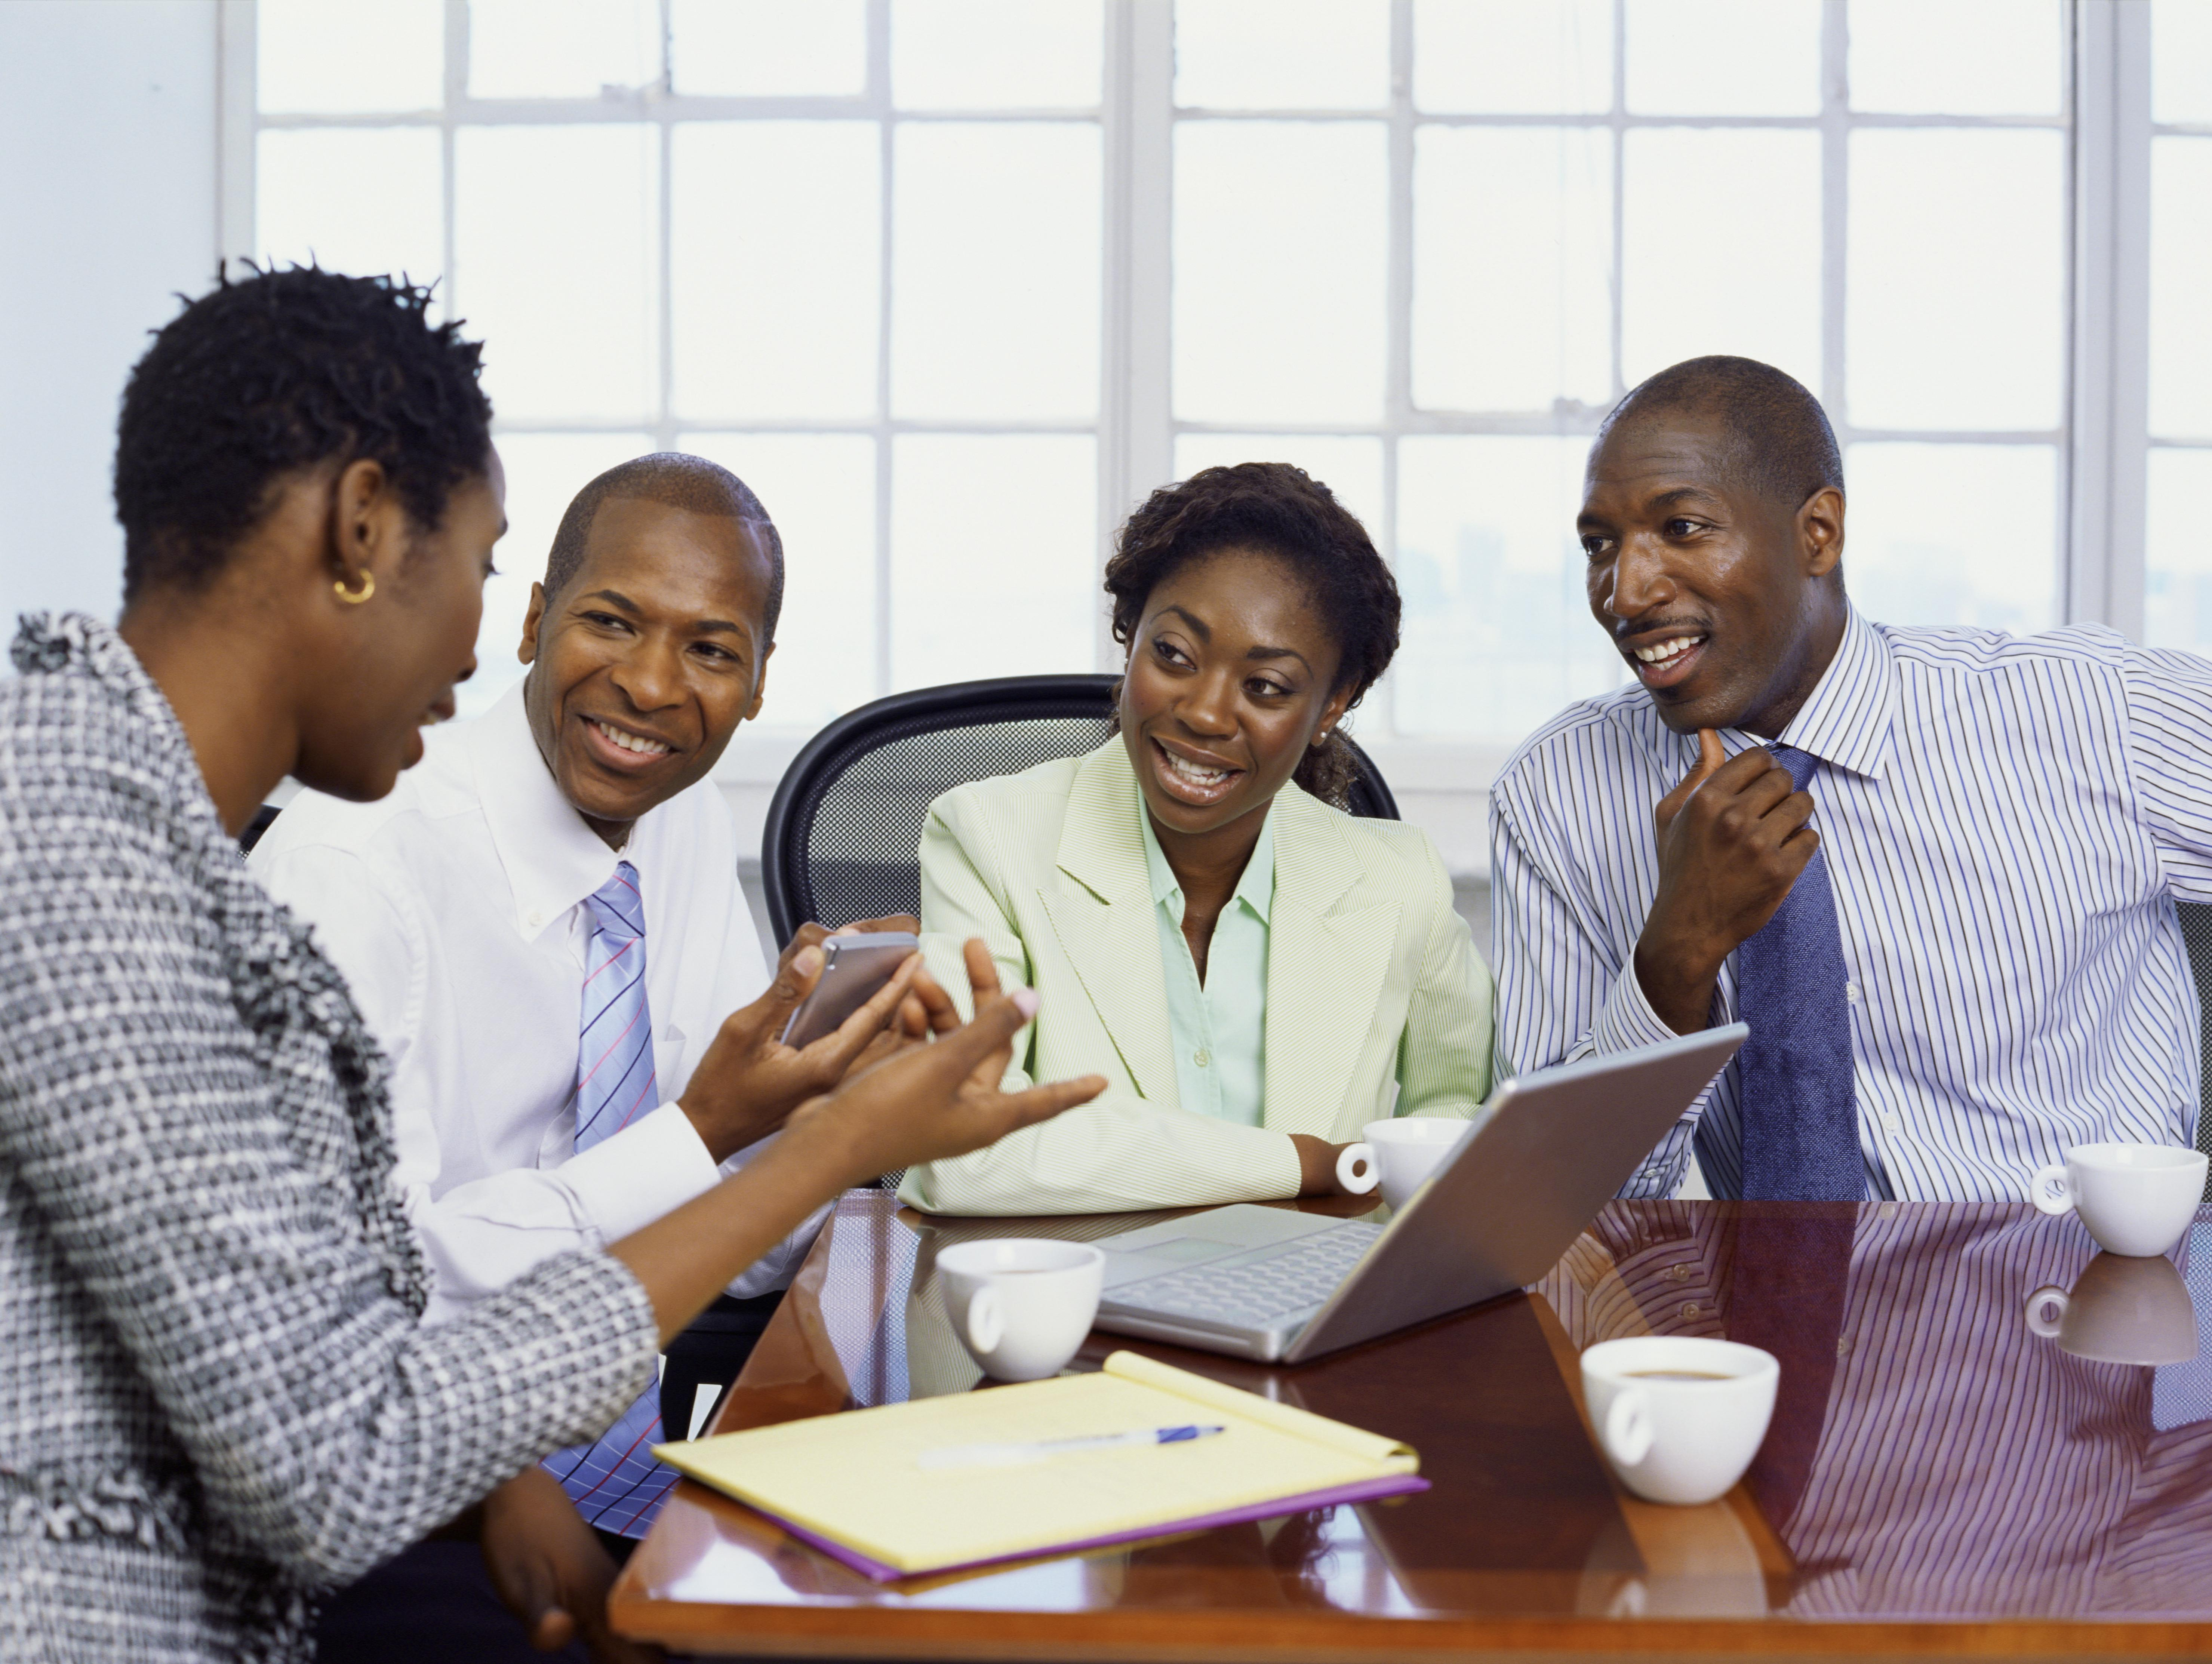 two businessmen and two businesswomen discussing in an office